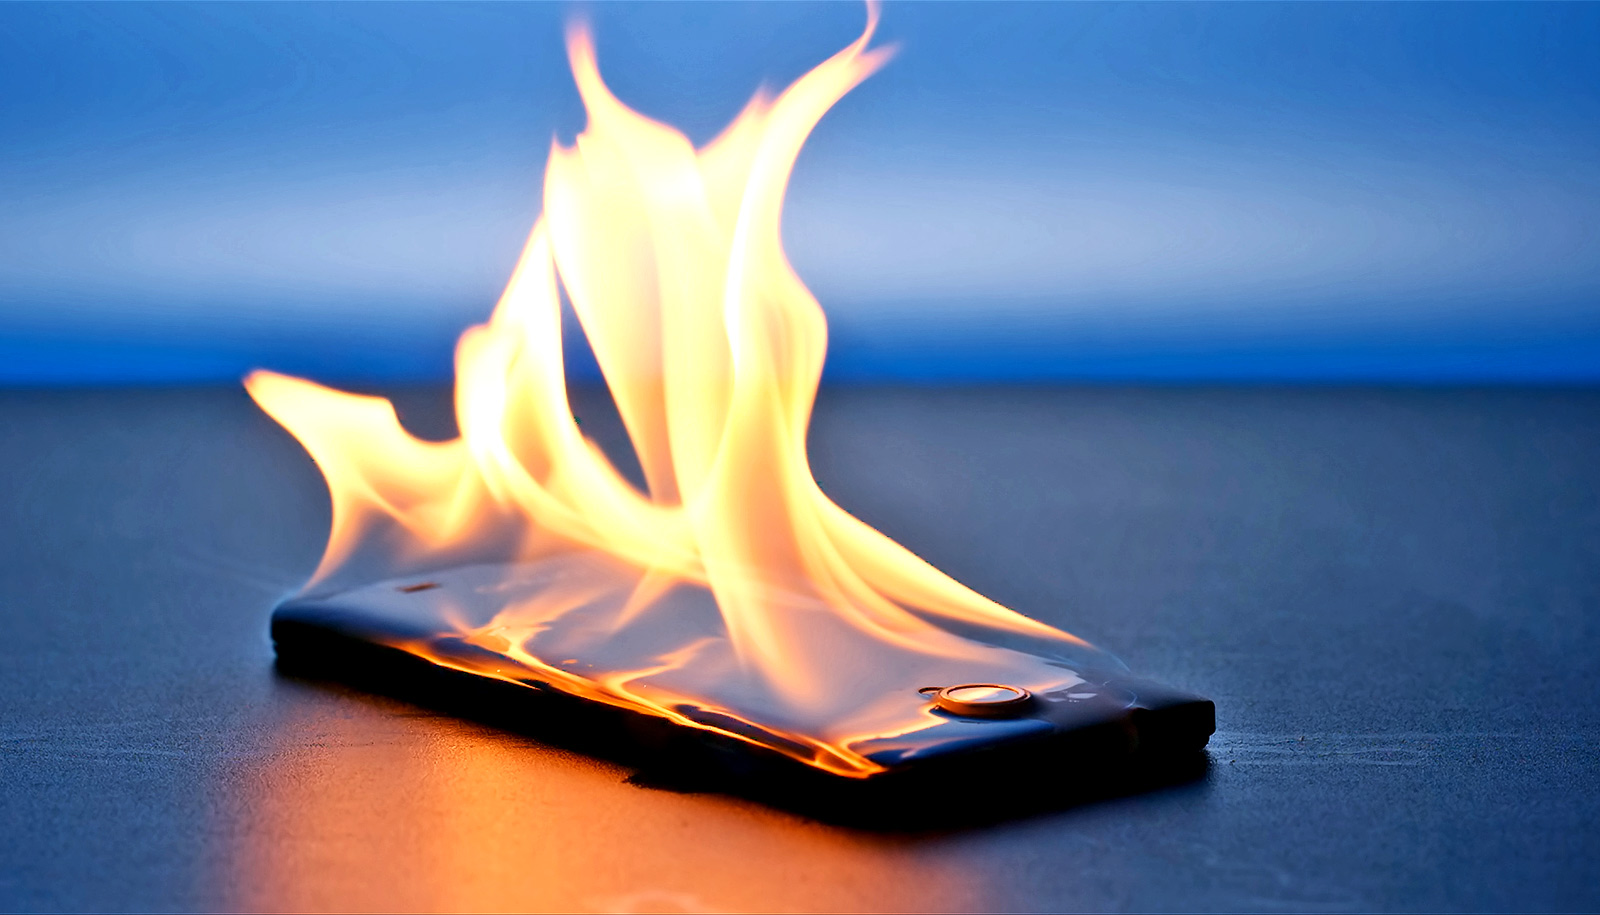 Nanomaterial can protect electronics from major heat